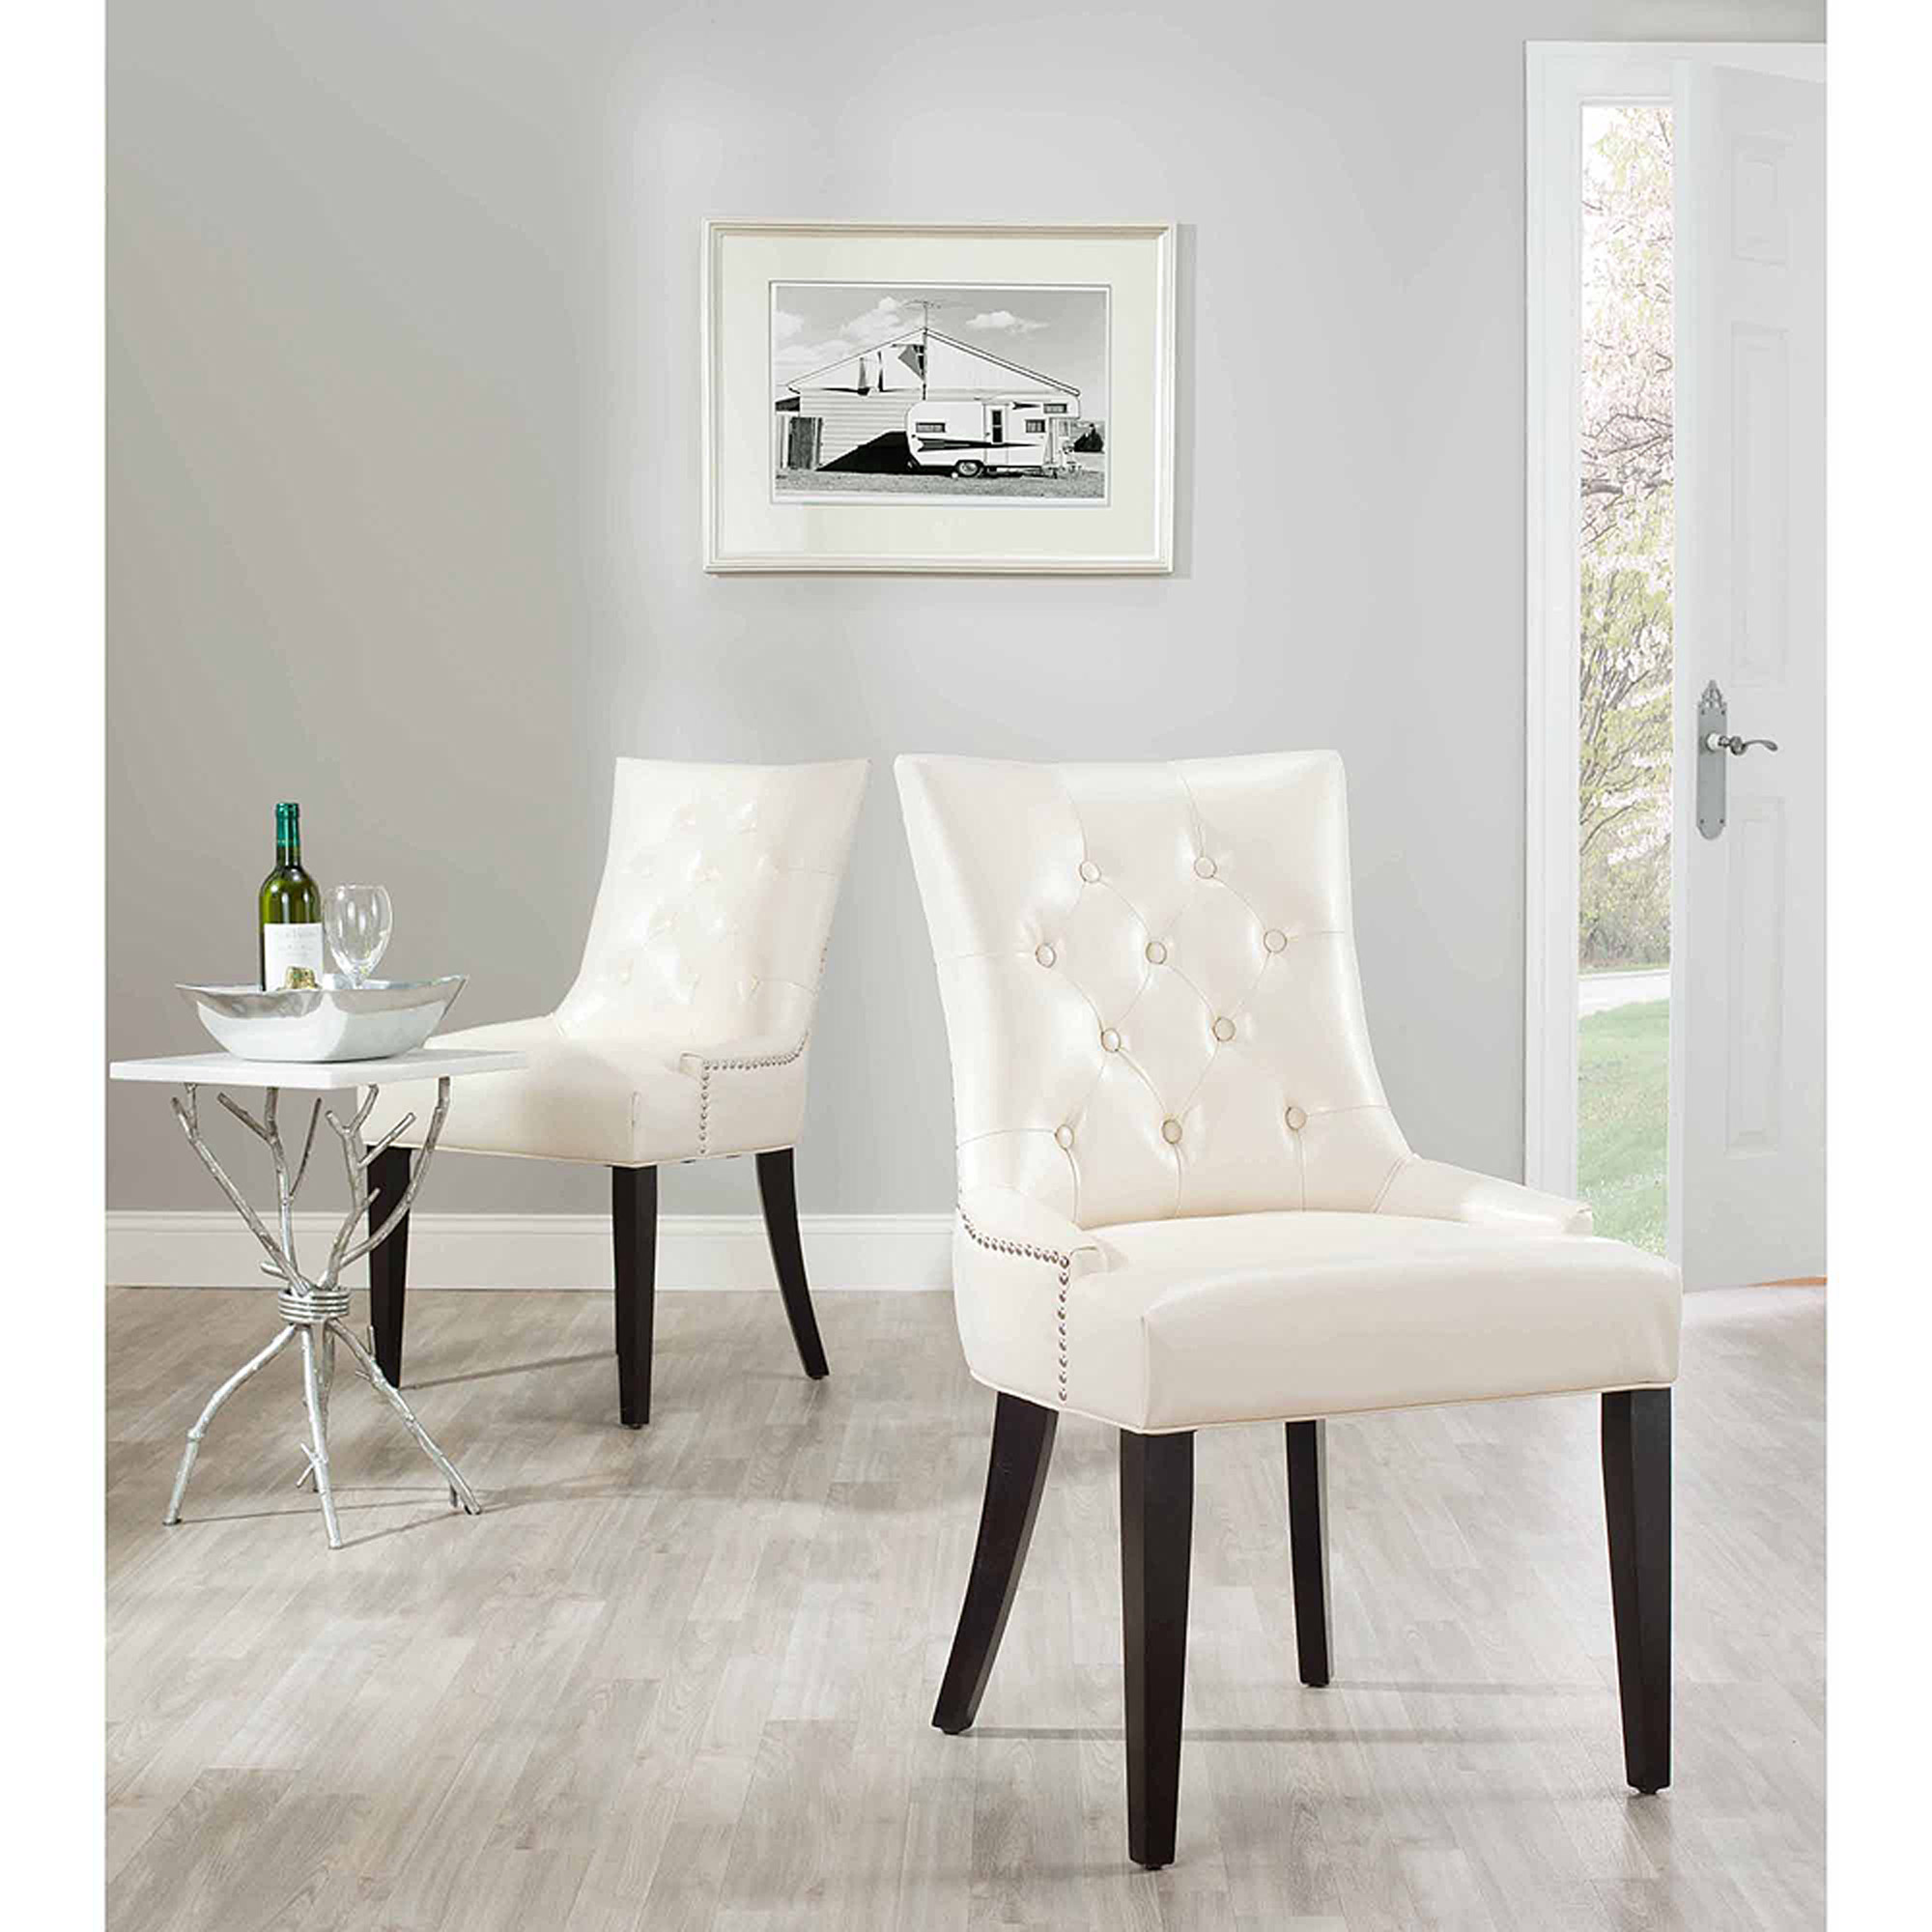 Safavieh Abby Bicast Leather Side Chair Set of 2 Walmart